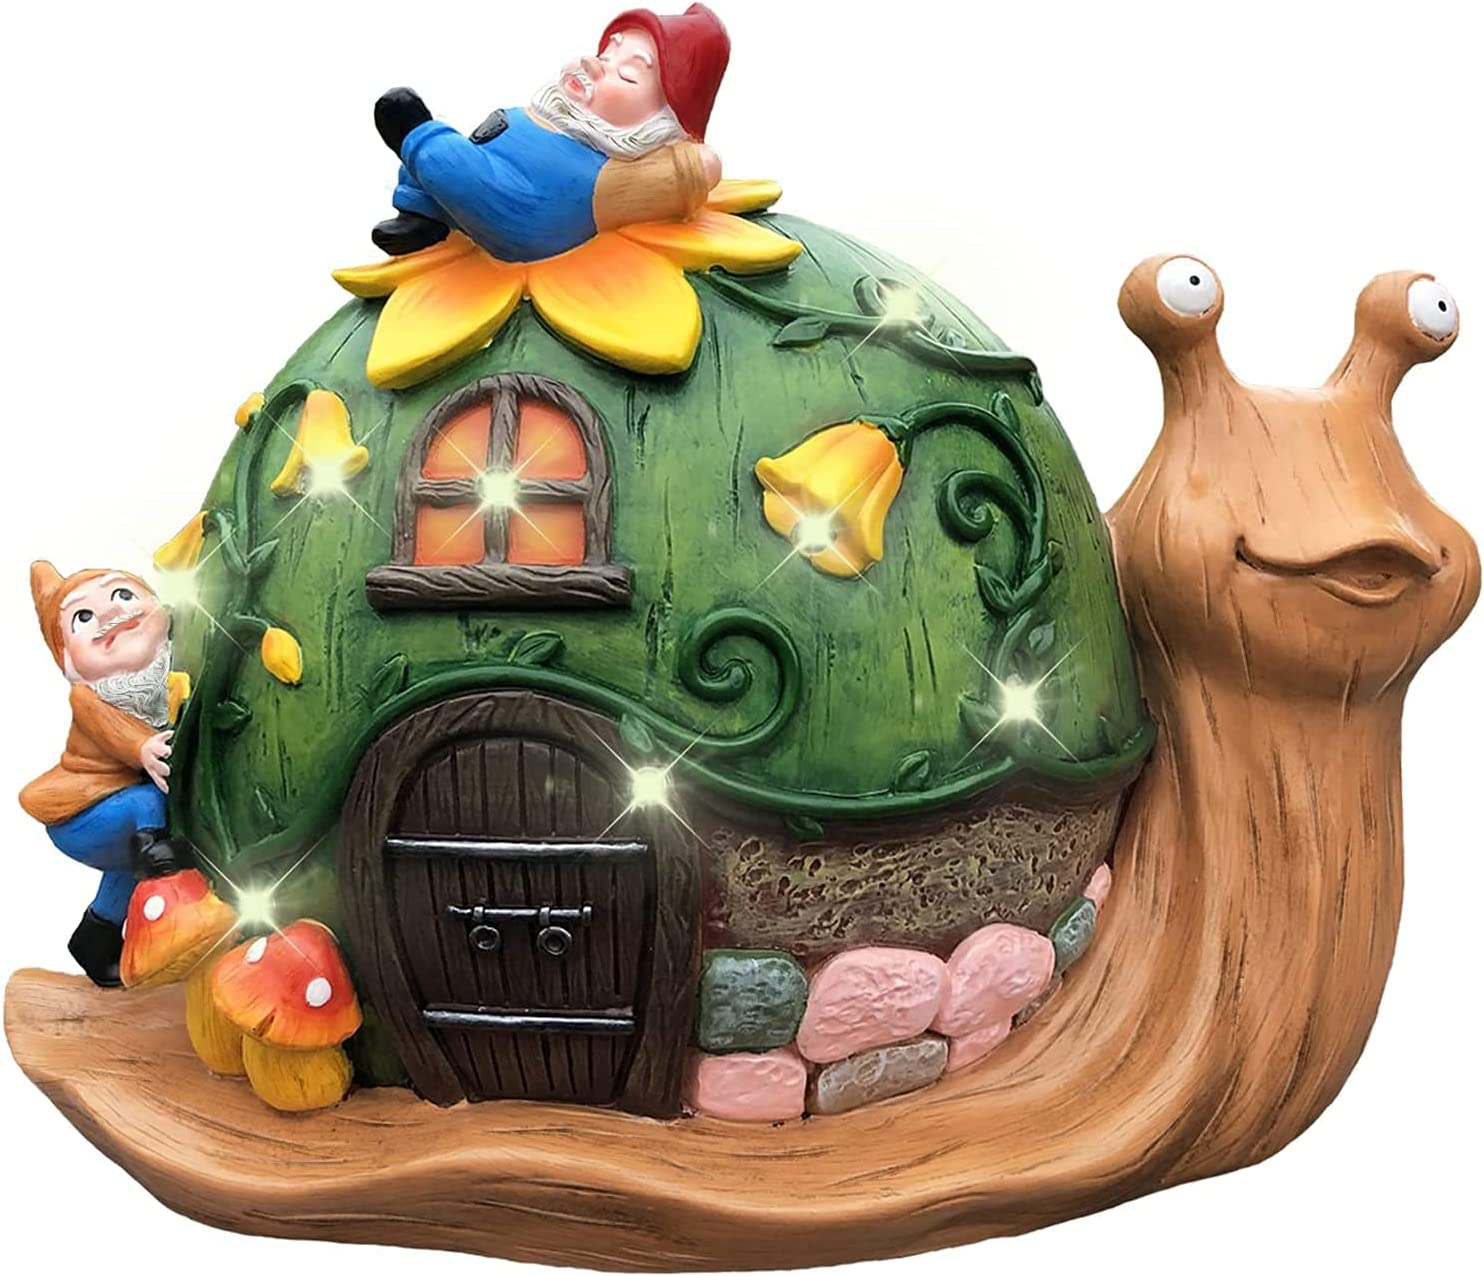 YOUIN Solar Snail Garden Statue Anim Year-end gift Choice Decor Outdoor Powered Large